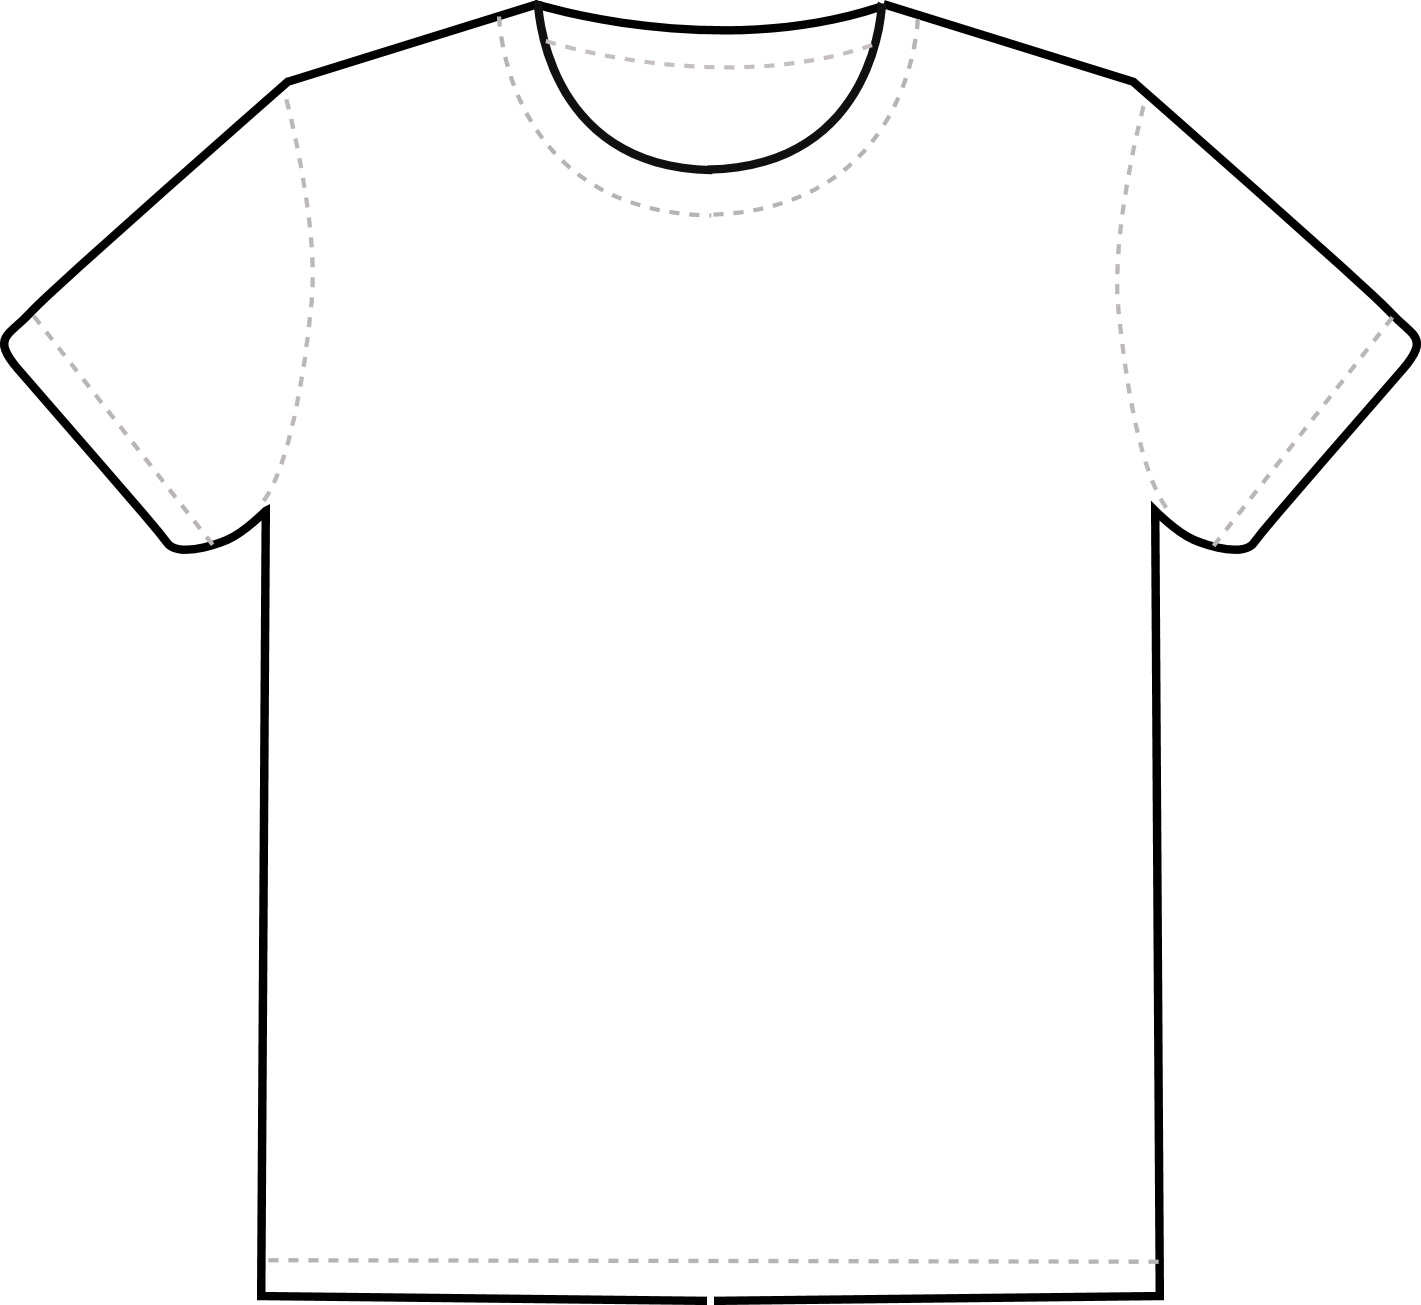 T SHIRT TEMPLATES | One Template